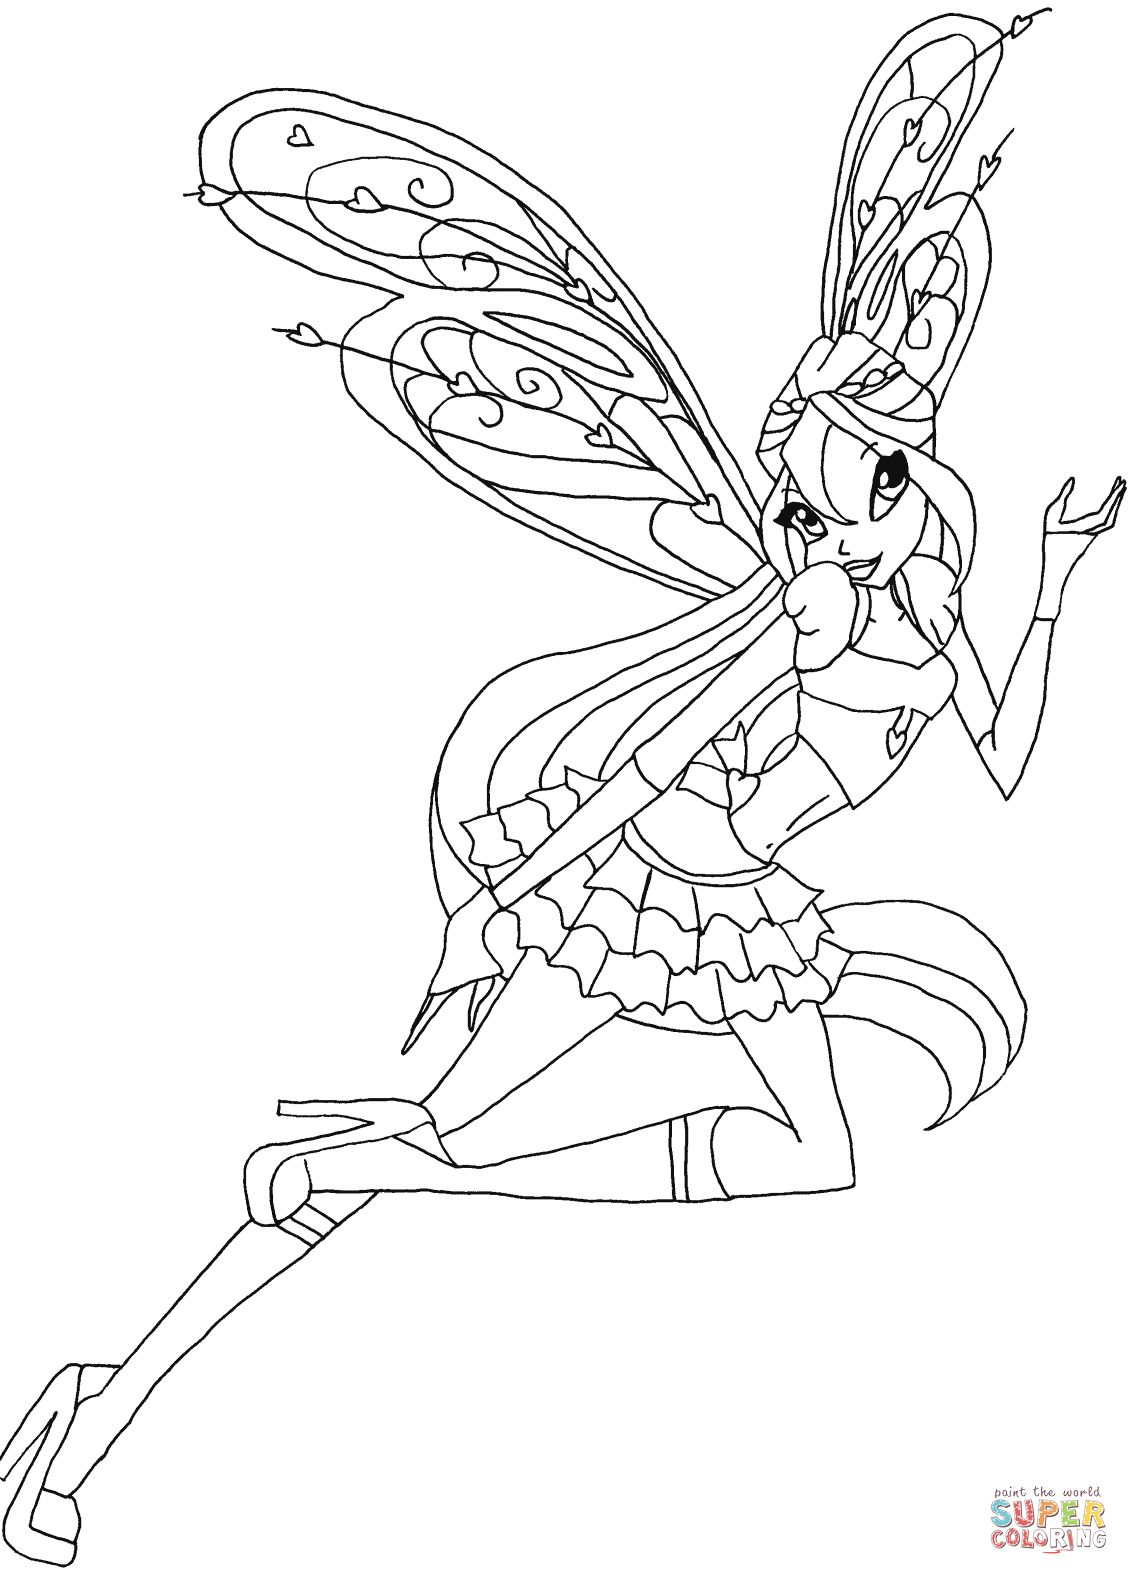 winx club colouring pages believix winx club all colorear winx club believix club colouring winx pages believix